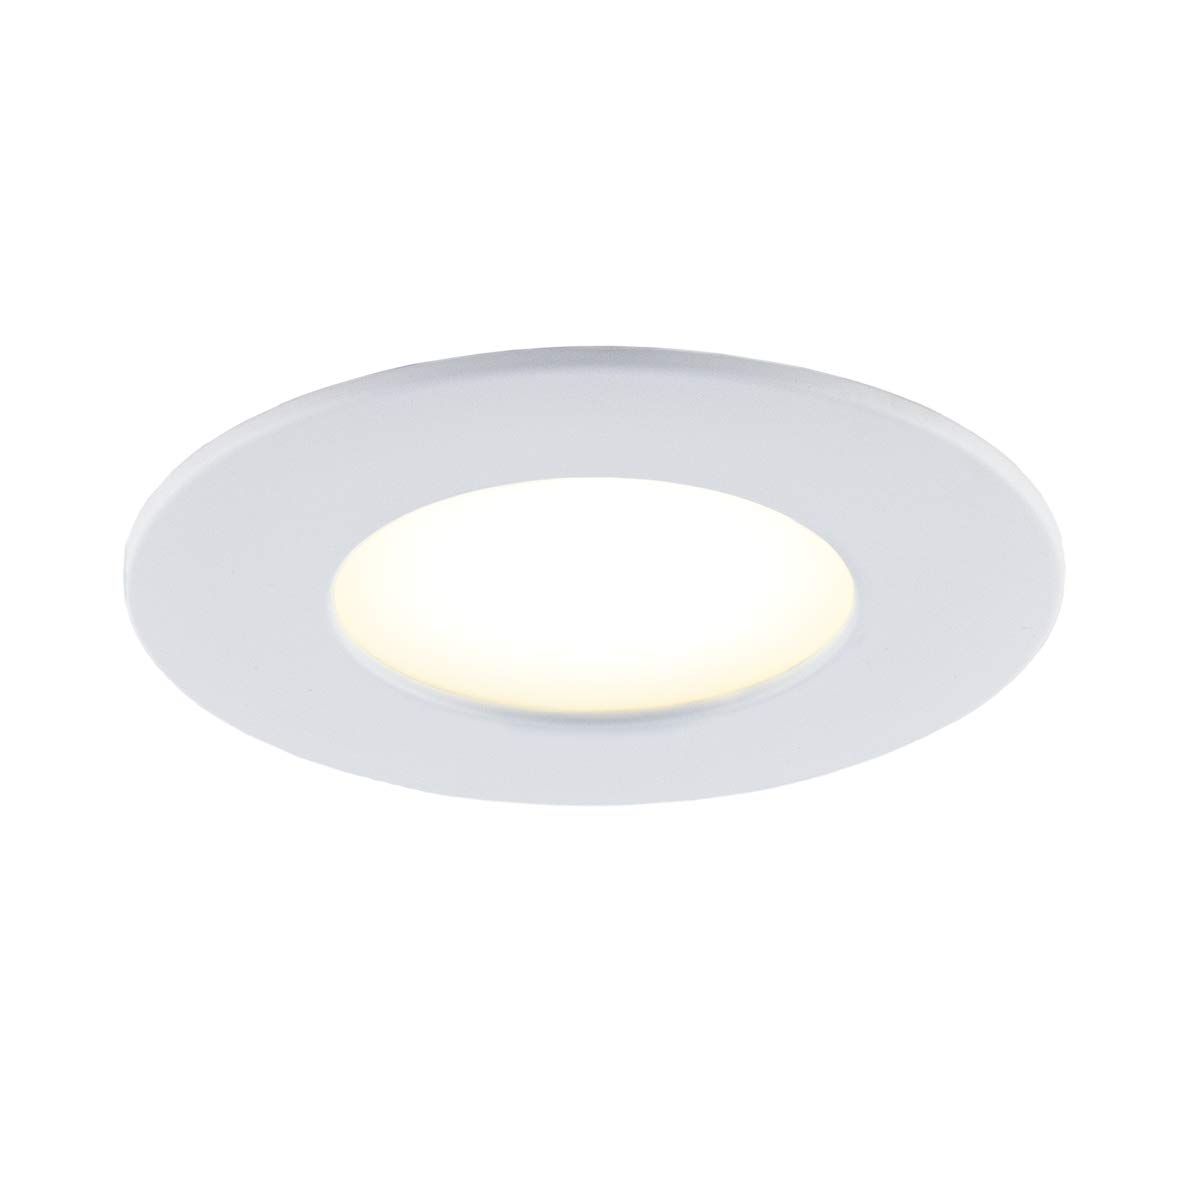 No Hub Required 4-in Matte White Tunable Dimmable Energy Star Smart BAZZ SLMR4RGBWWFW Slim Colors Smart Home Wi-Fi LED Recessed Lighting Kit